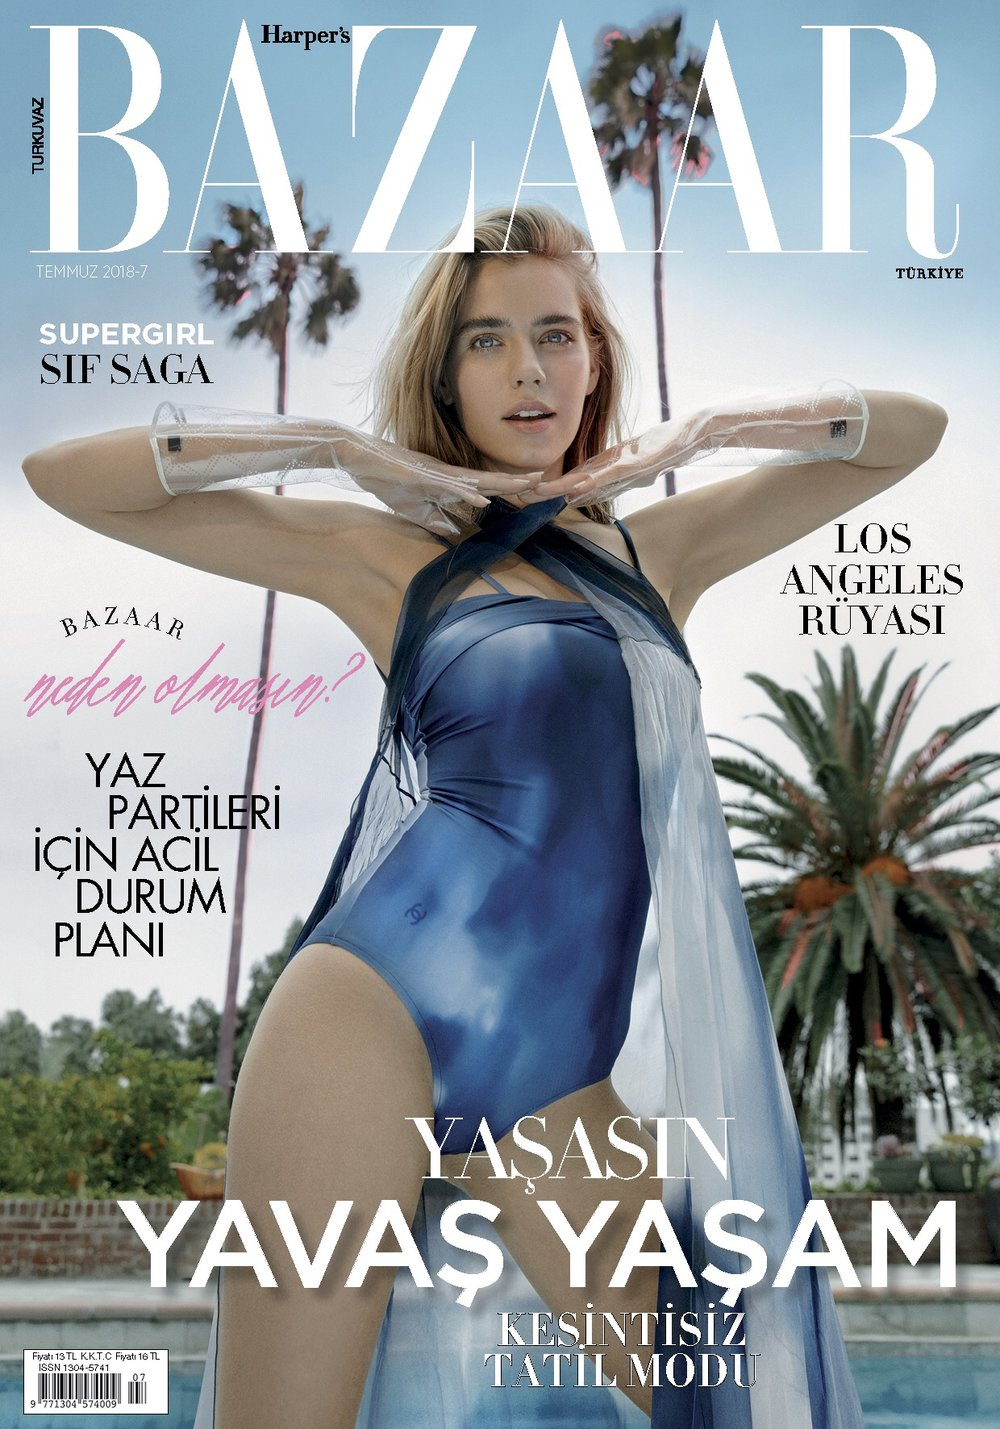 Harper's Bazaar Turkey Cover  -